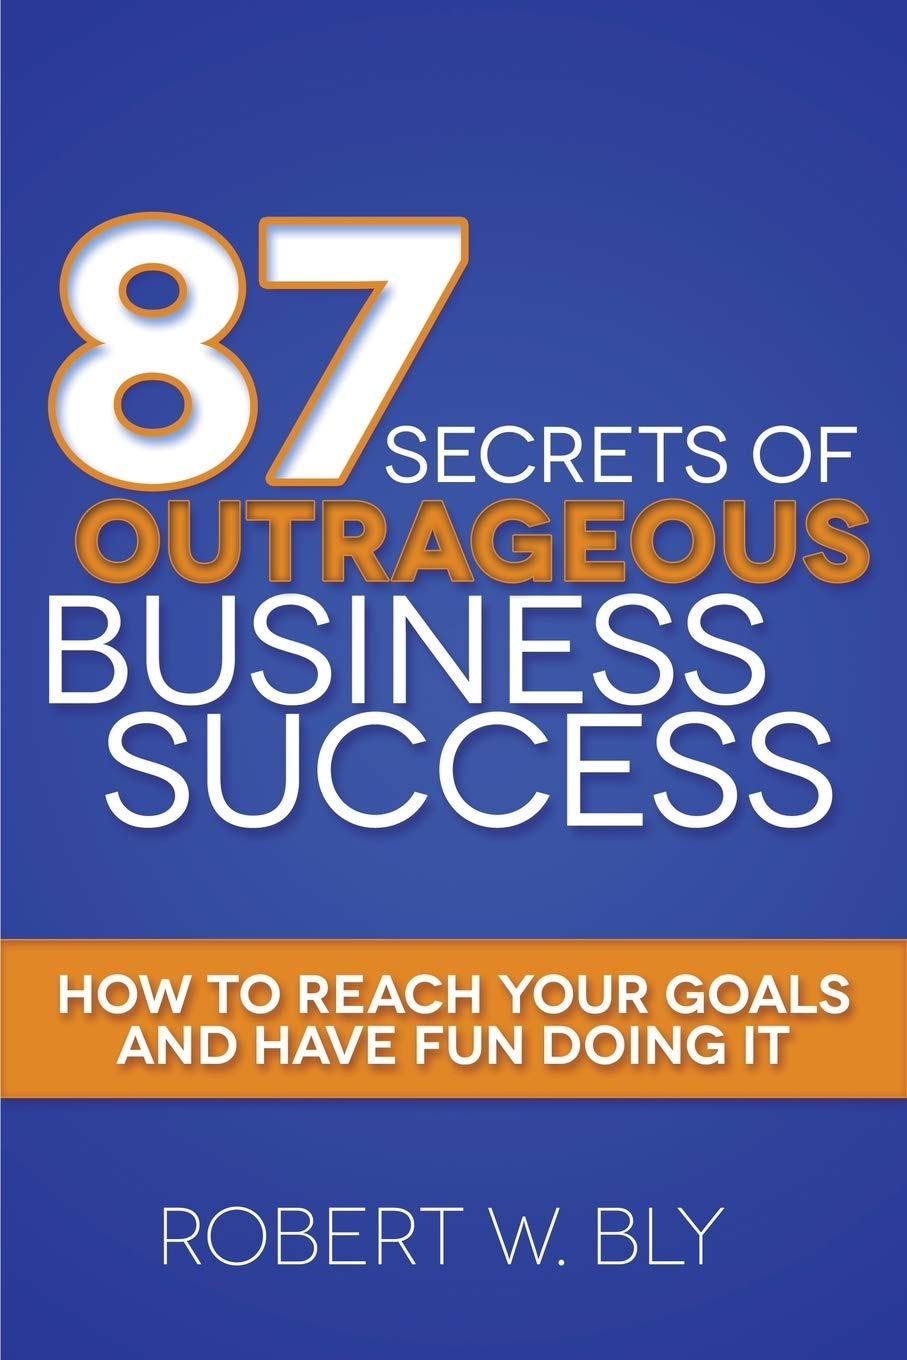 87 Secrets of Outrageous Business Success: How to Reach Your Goals and Have Fun Doing It  eBook cover